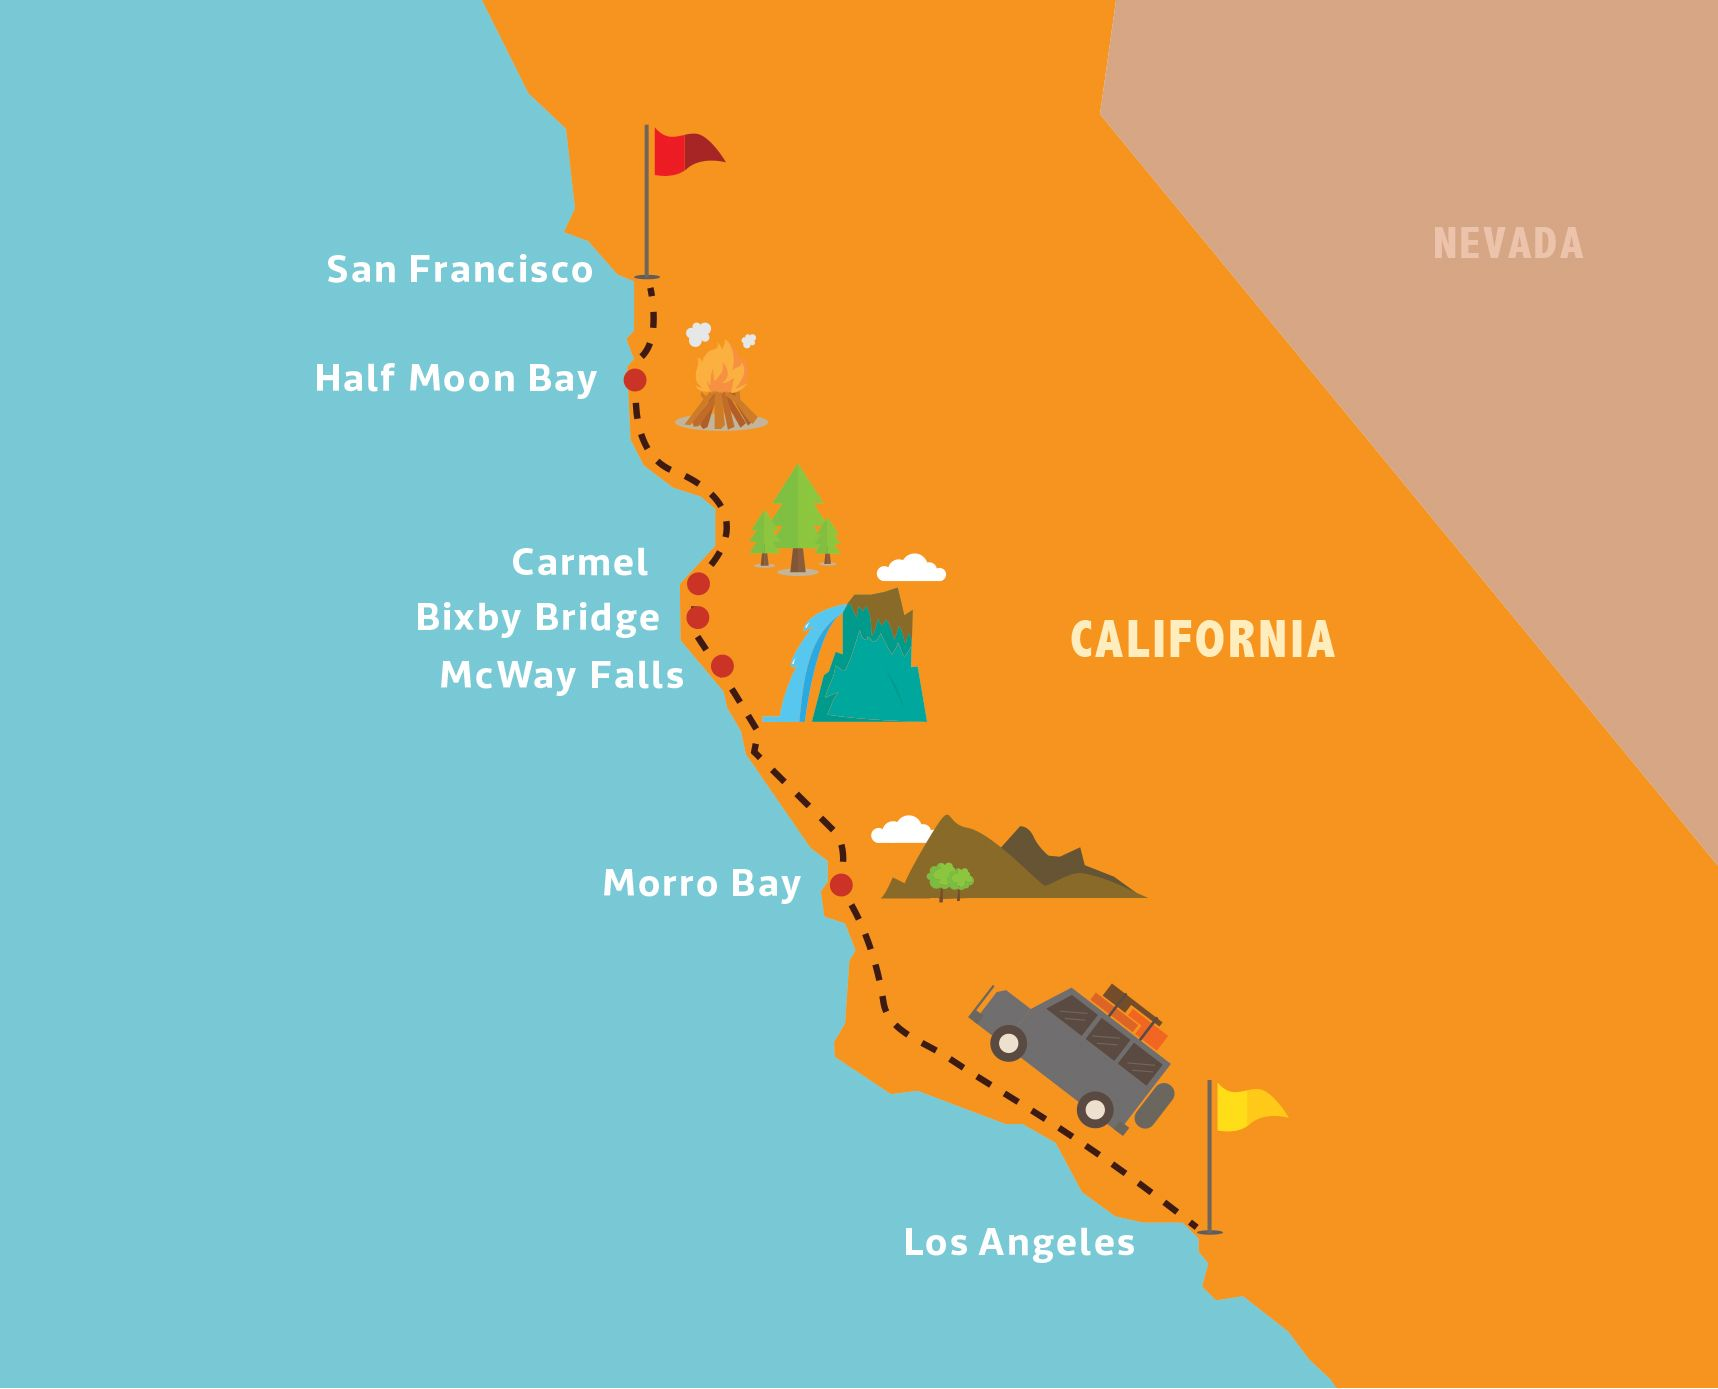 roadtrip guide: cruising the california coastline from la to